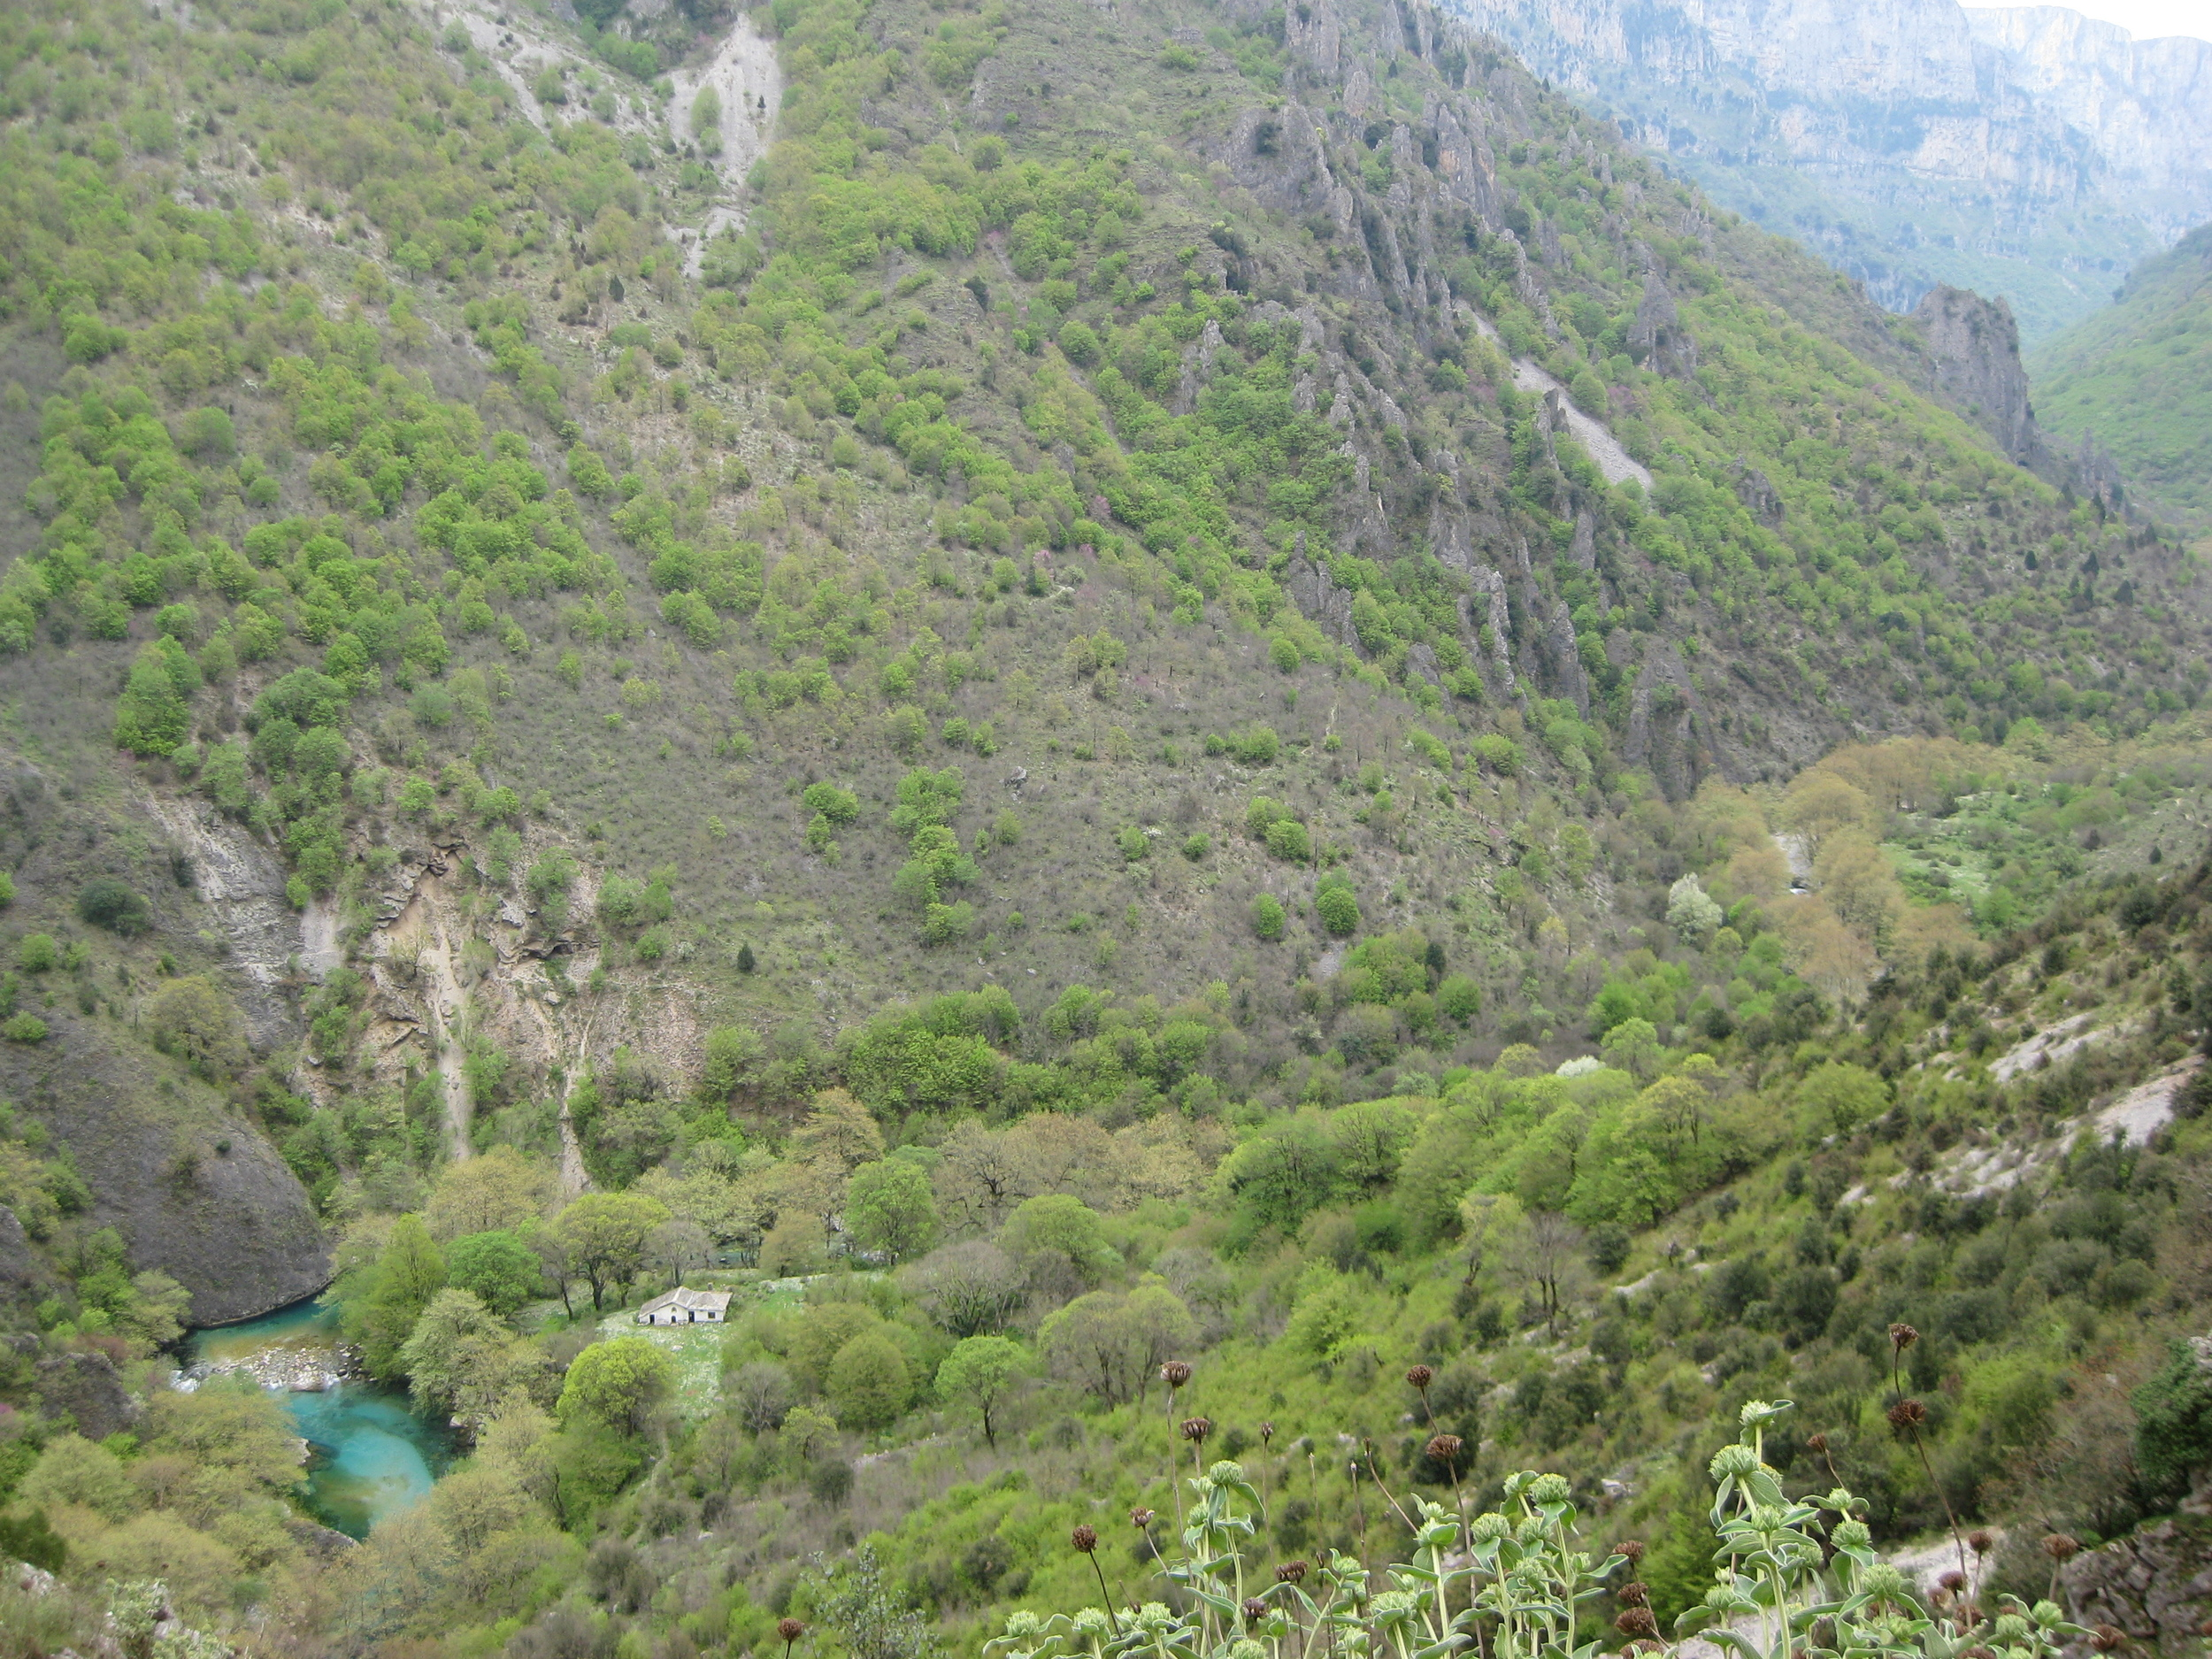 Climbing above the Vikos gorge. Down below our flower carpeted picnic spot